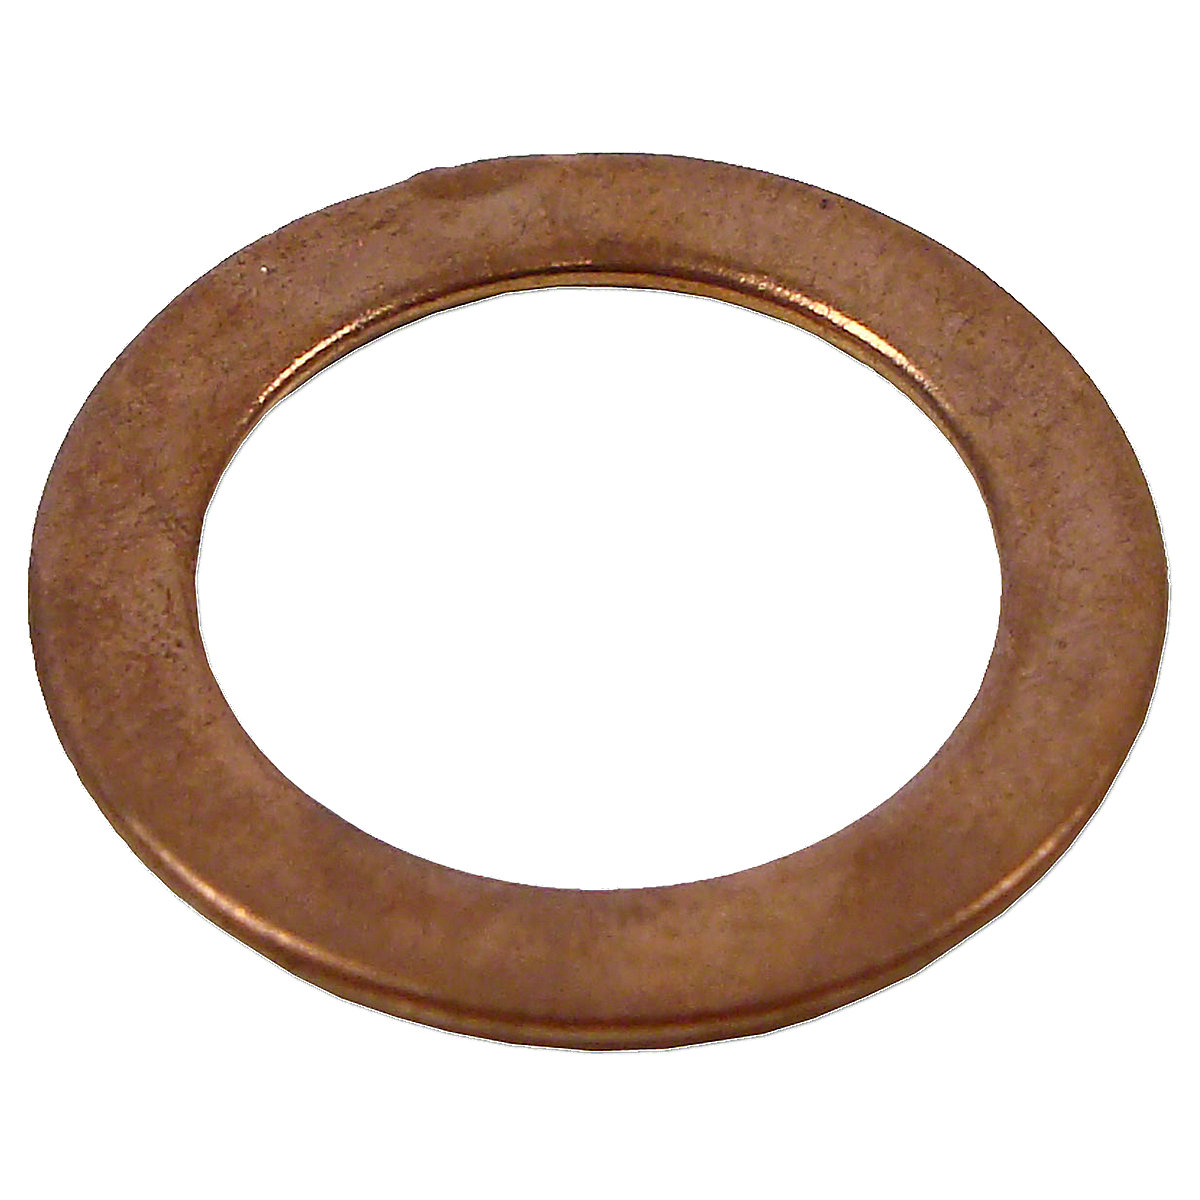 ABC540 - Washer / Gasket for Oil Pan Dr